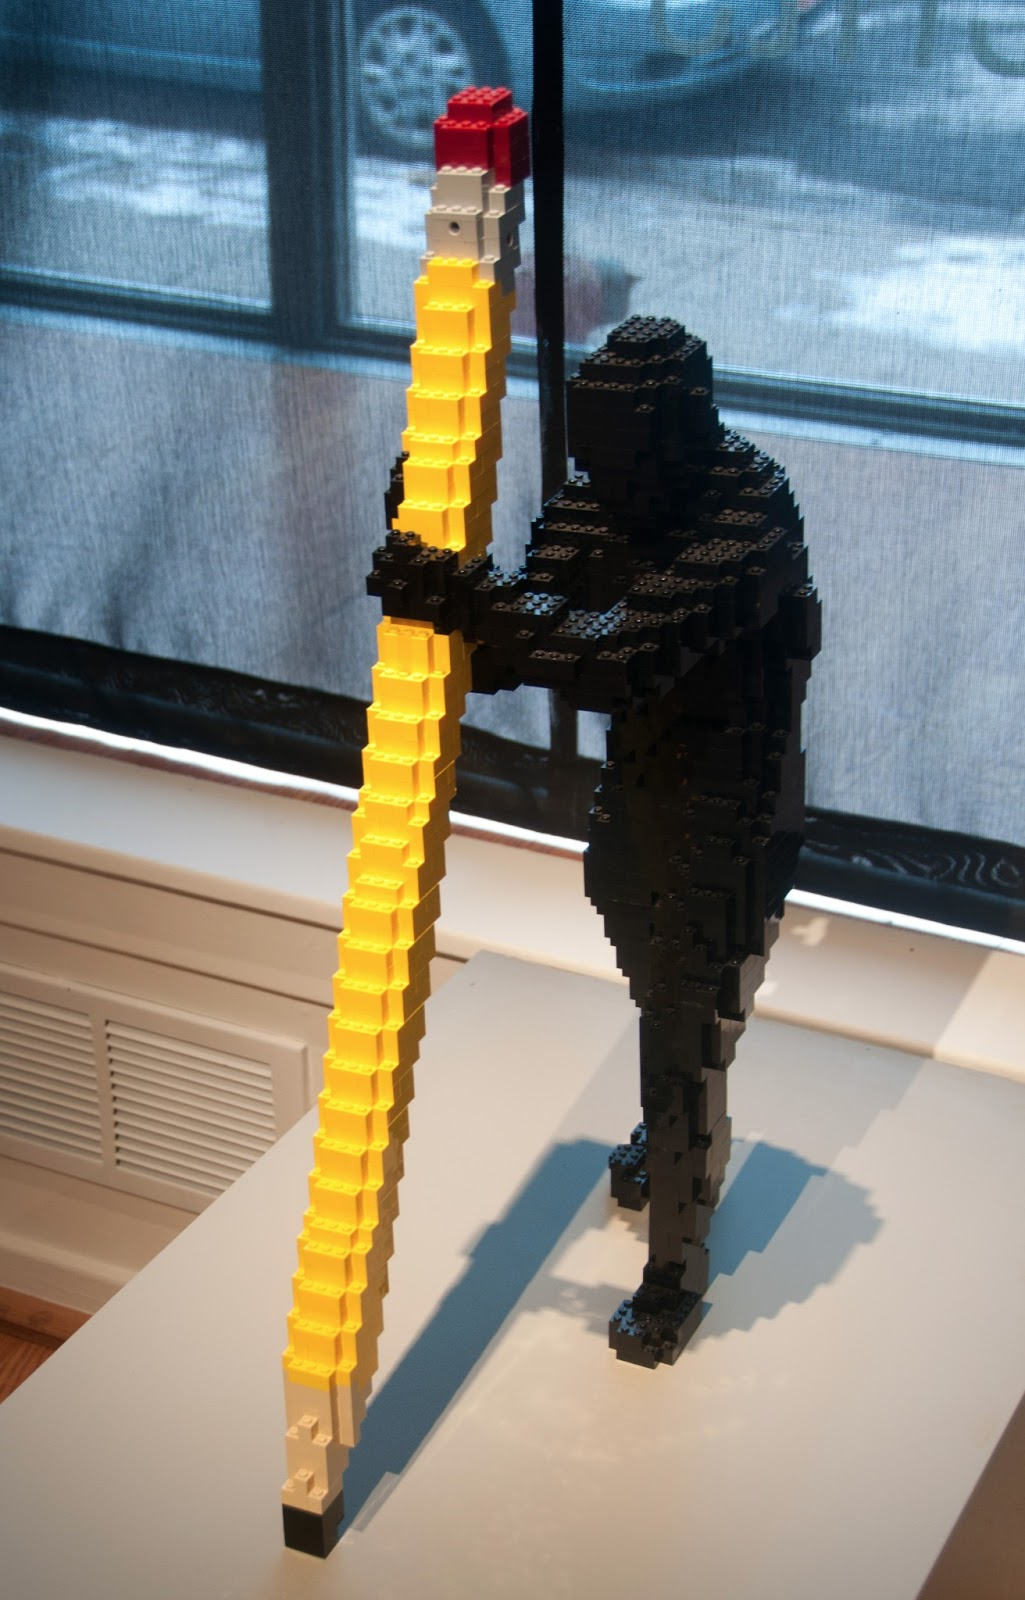 lego, lego brick, lego exhibit, park city utah, fashion blog, fashion blogger, style blog, style blogger, mens fashion, mens fashion blog, mens style, mens style blog, womens style blog, anthropologie ootd blog, anthropologie ootd, anthropologie, ootd, mens ootd, womens ootd,